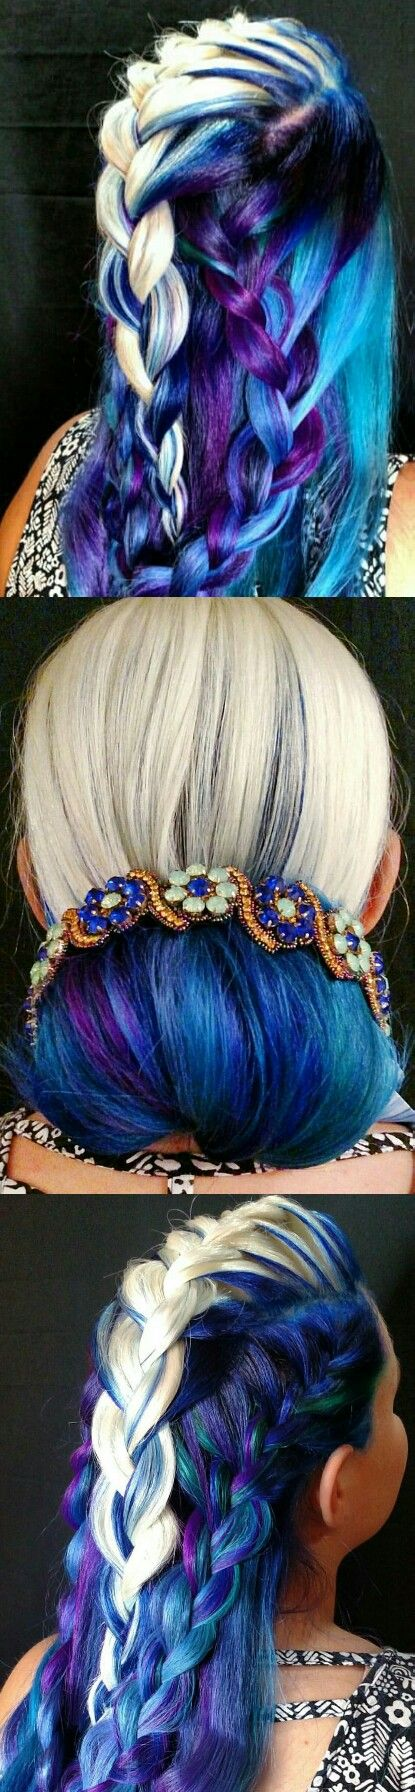 Blonde deep blue dyed hair @mvtoribriggs